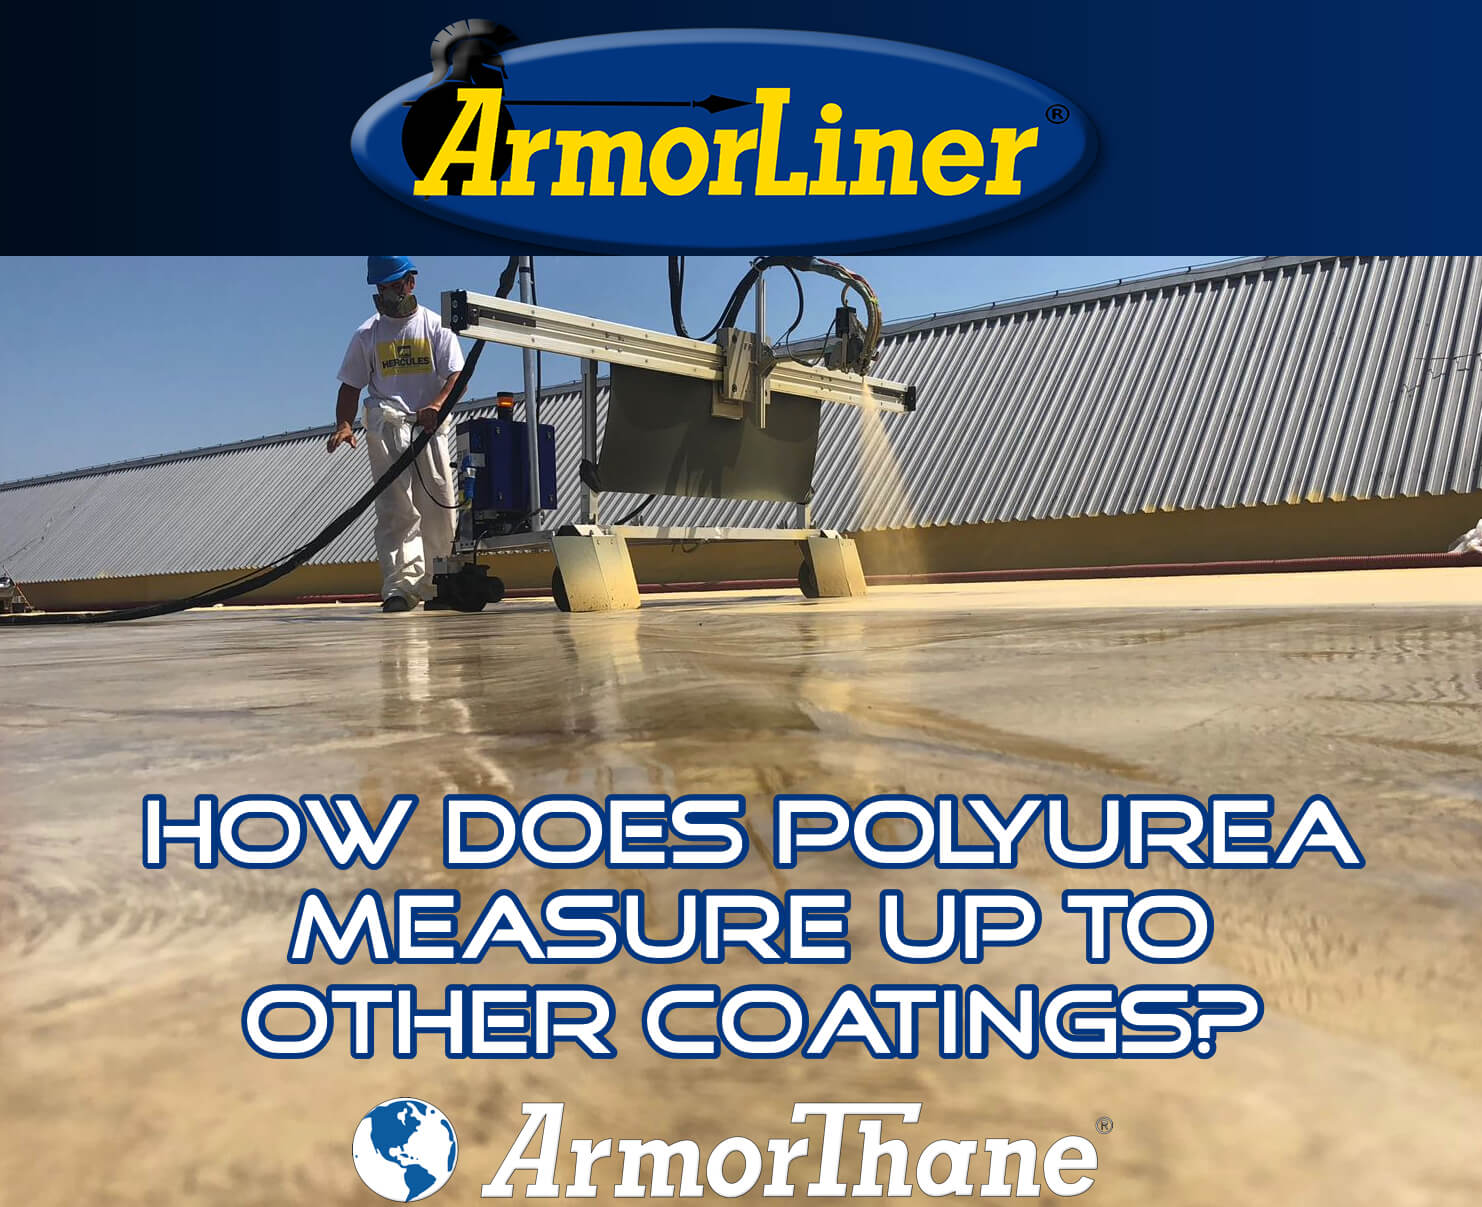 How Does Polyurea Measure Up To Other Coatings?